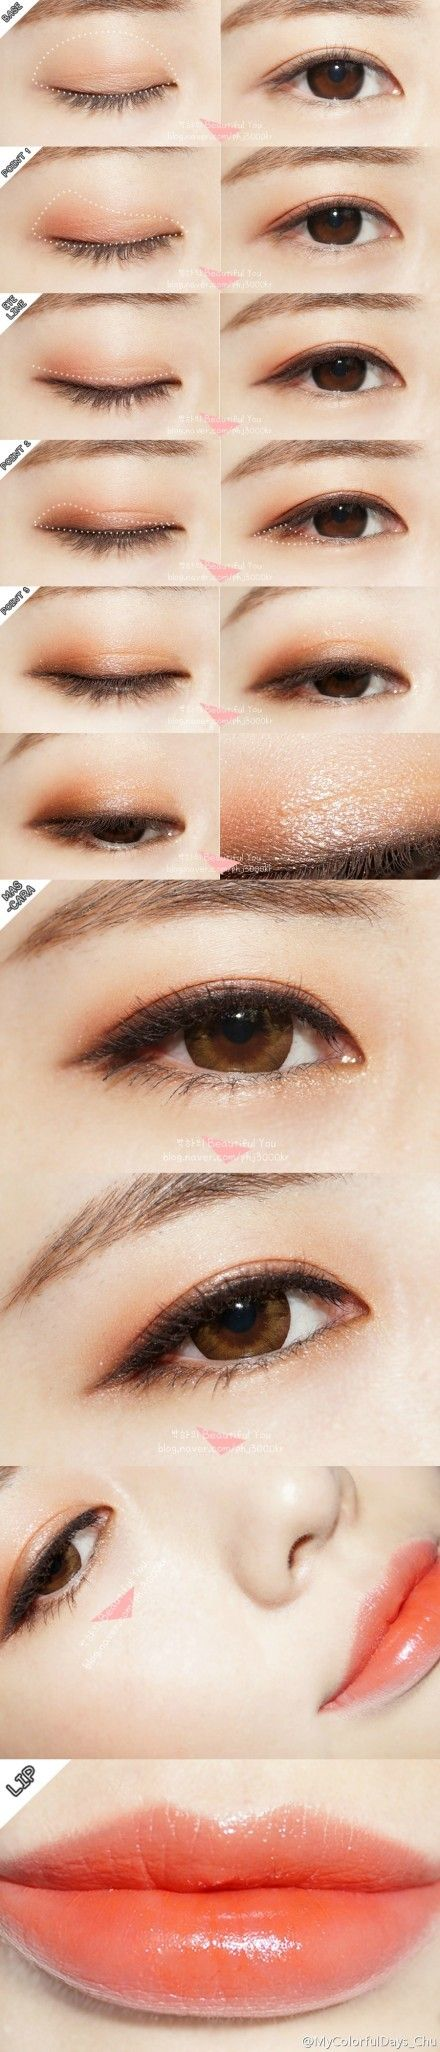 asian make-up using NEO Extra Size Dali Brown circle lenses from EyeCandy's || SHOP >> http://www.eyecandys.com/neo-extra-size-dali-brown/